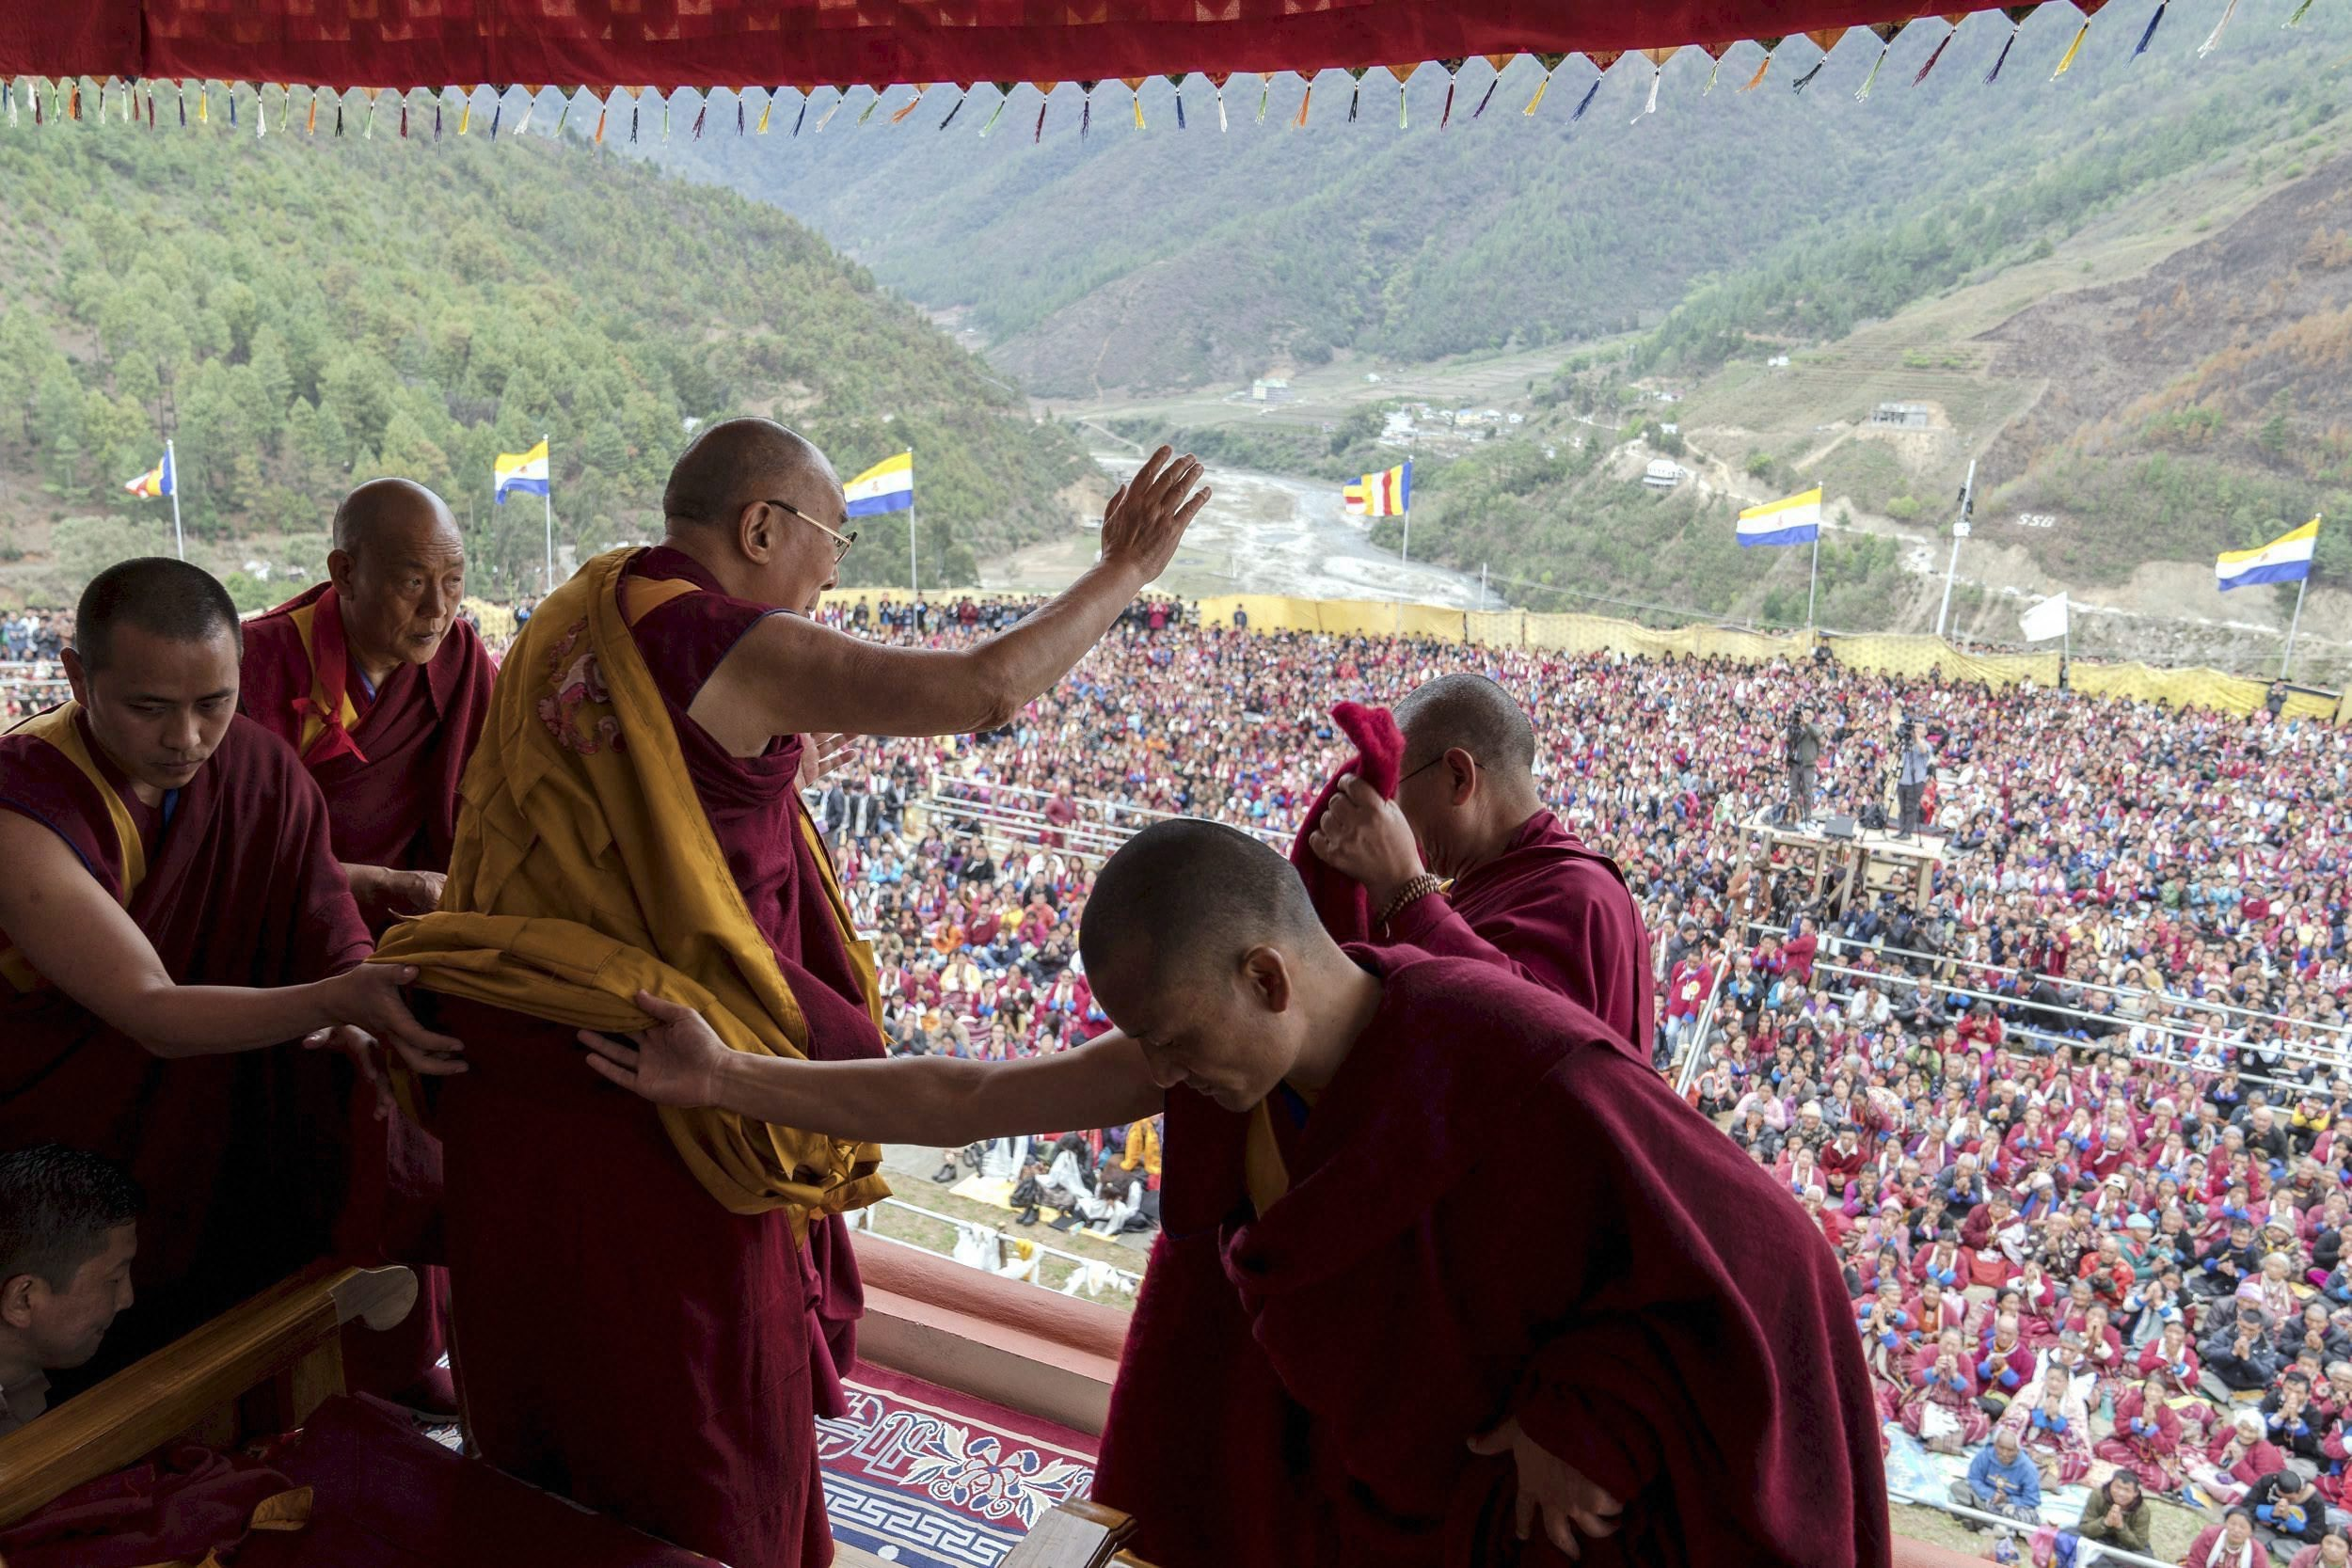 Tibetan spiritual leader Dalai Lama waves to supporters after consecrating the Thupsung Dhargyeling Monastery in Dirang, Arunachal Pradesh, on Thursday. Credit: PTI